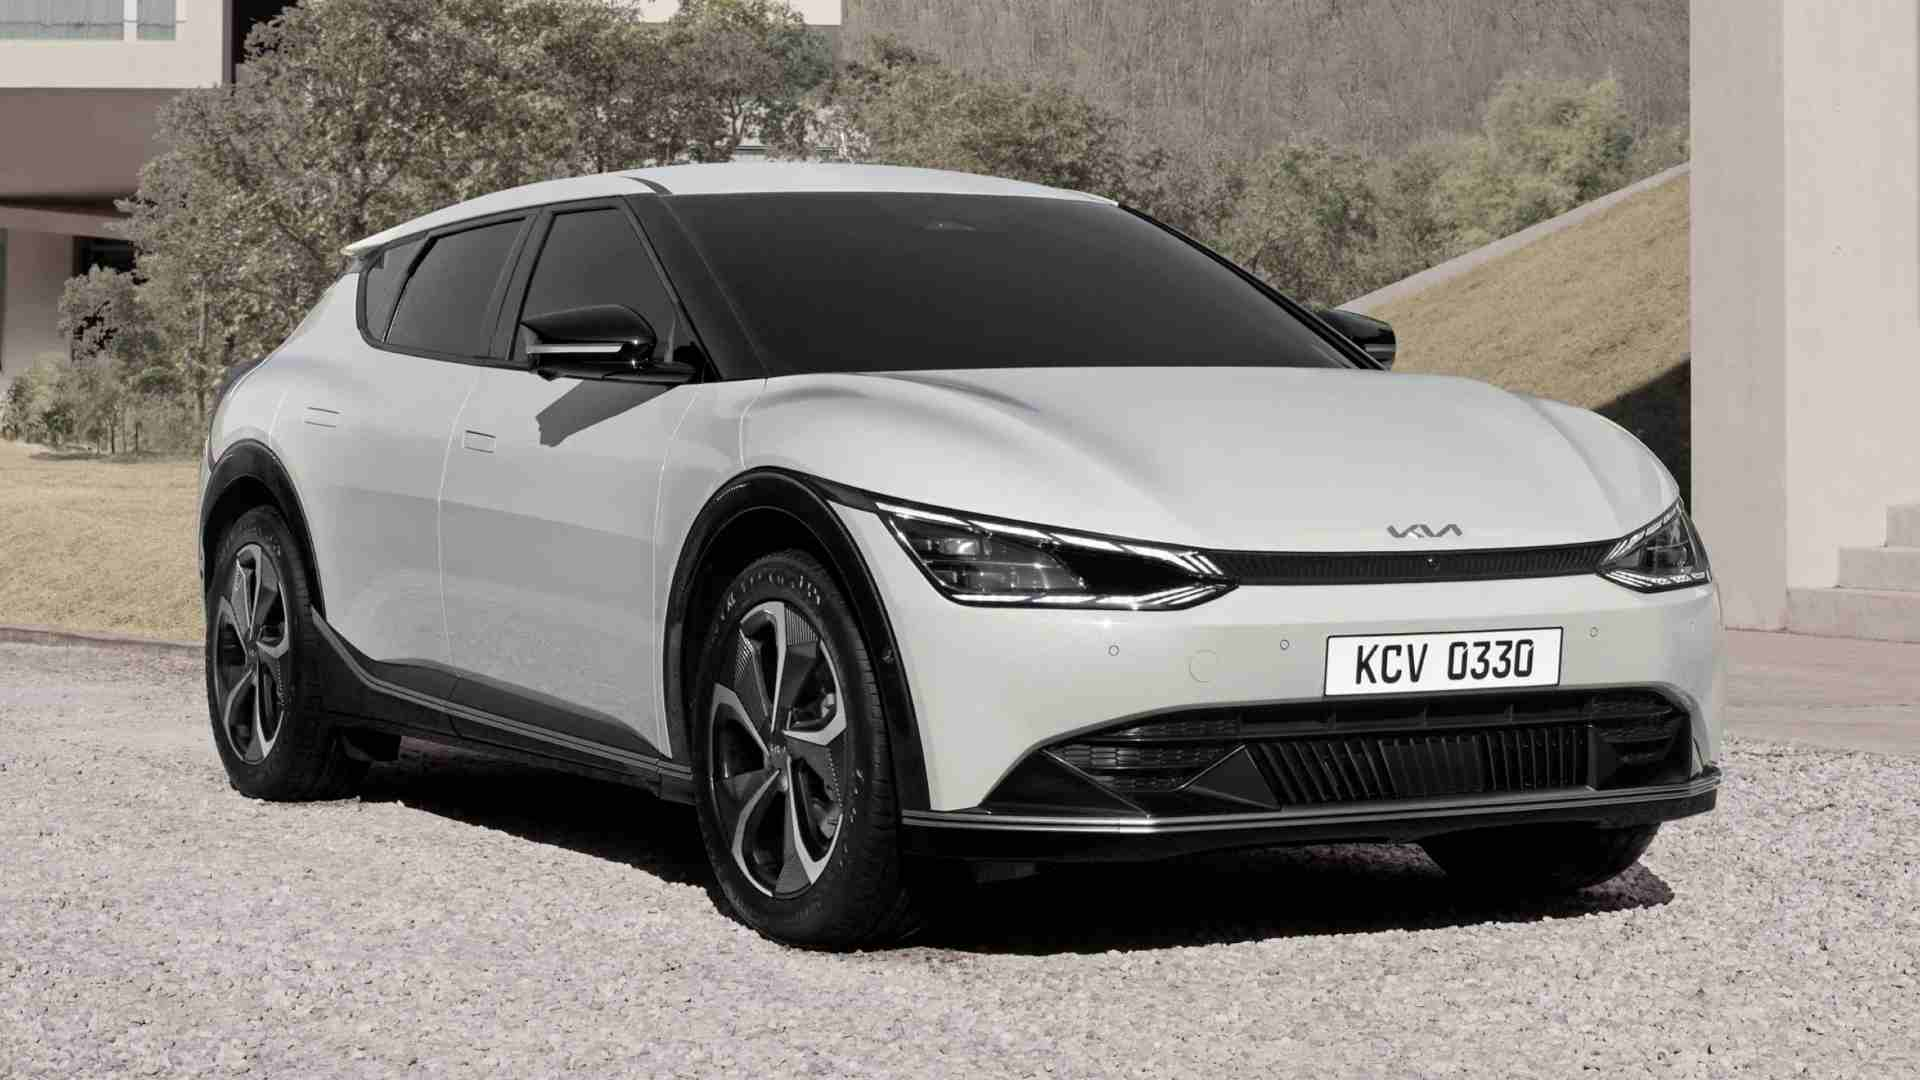 Kia EV6 is the brand's first dedicated all-electric vehicle, previewed ahead of world premiere